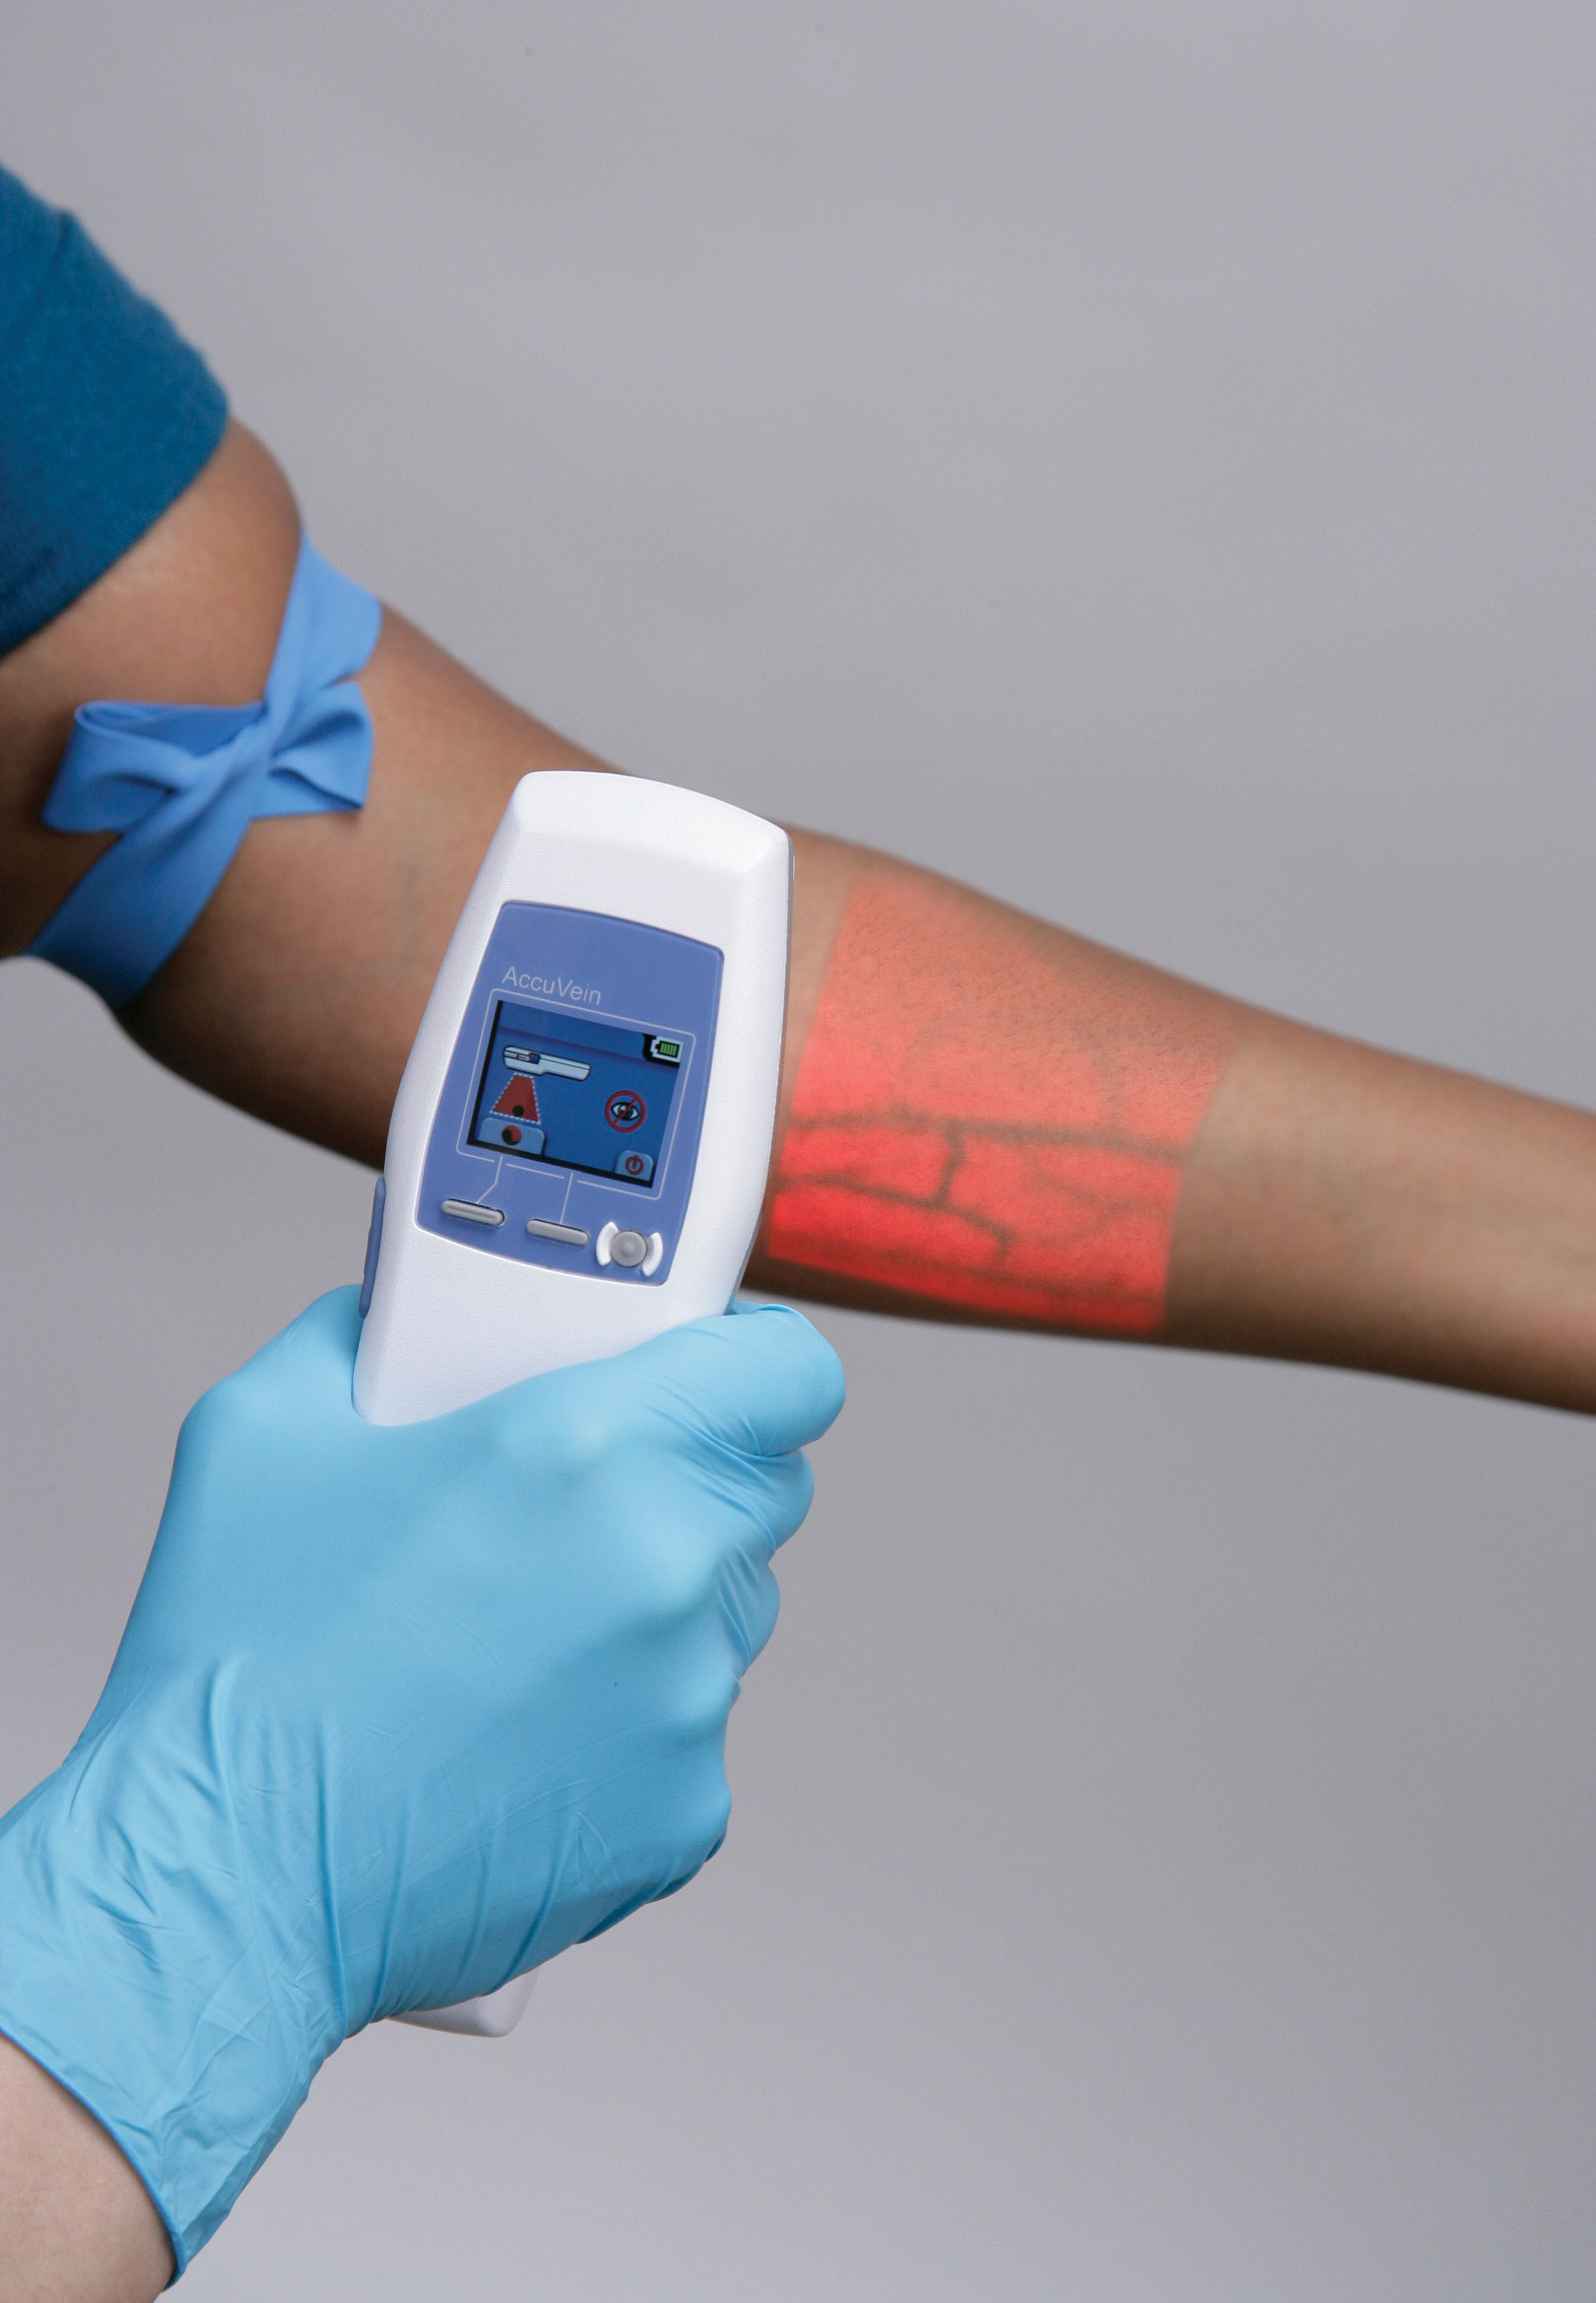 Accuvein Wins Top Prize In 15th Annual Medical Design